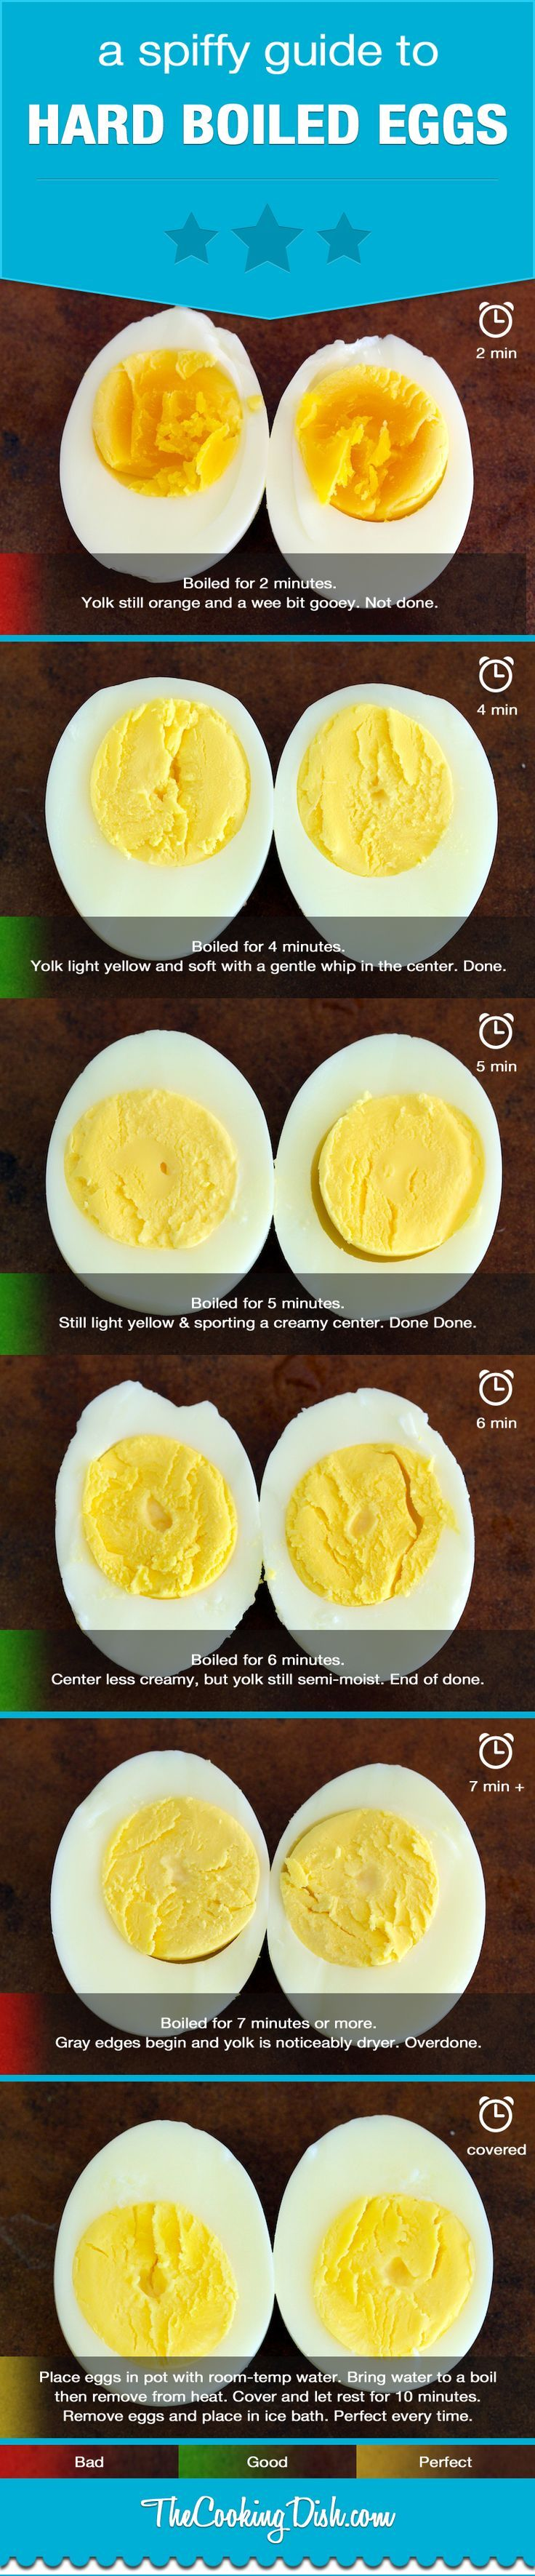 Hard boiled eggs travel fairly well on day hikes, provided you pack them with some cushioning. Lots of protein and deliciousness!